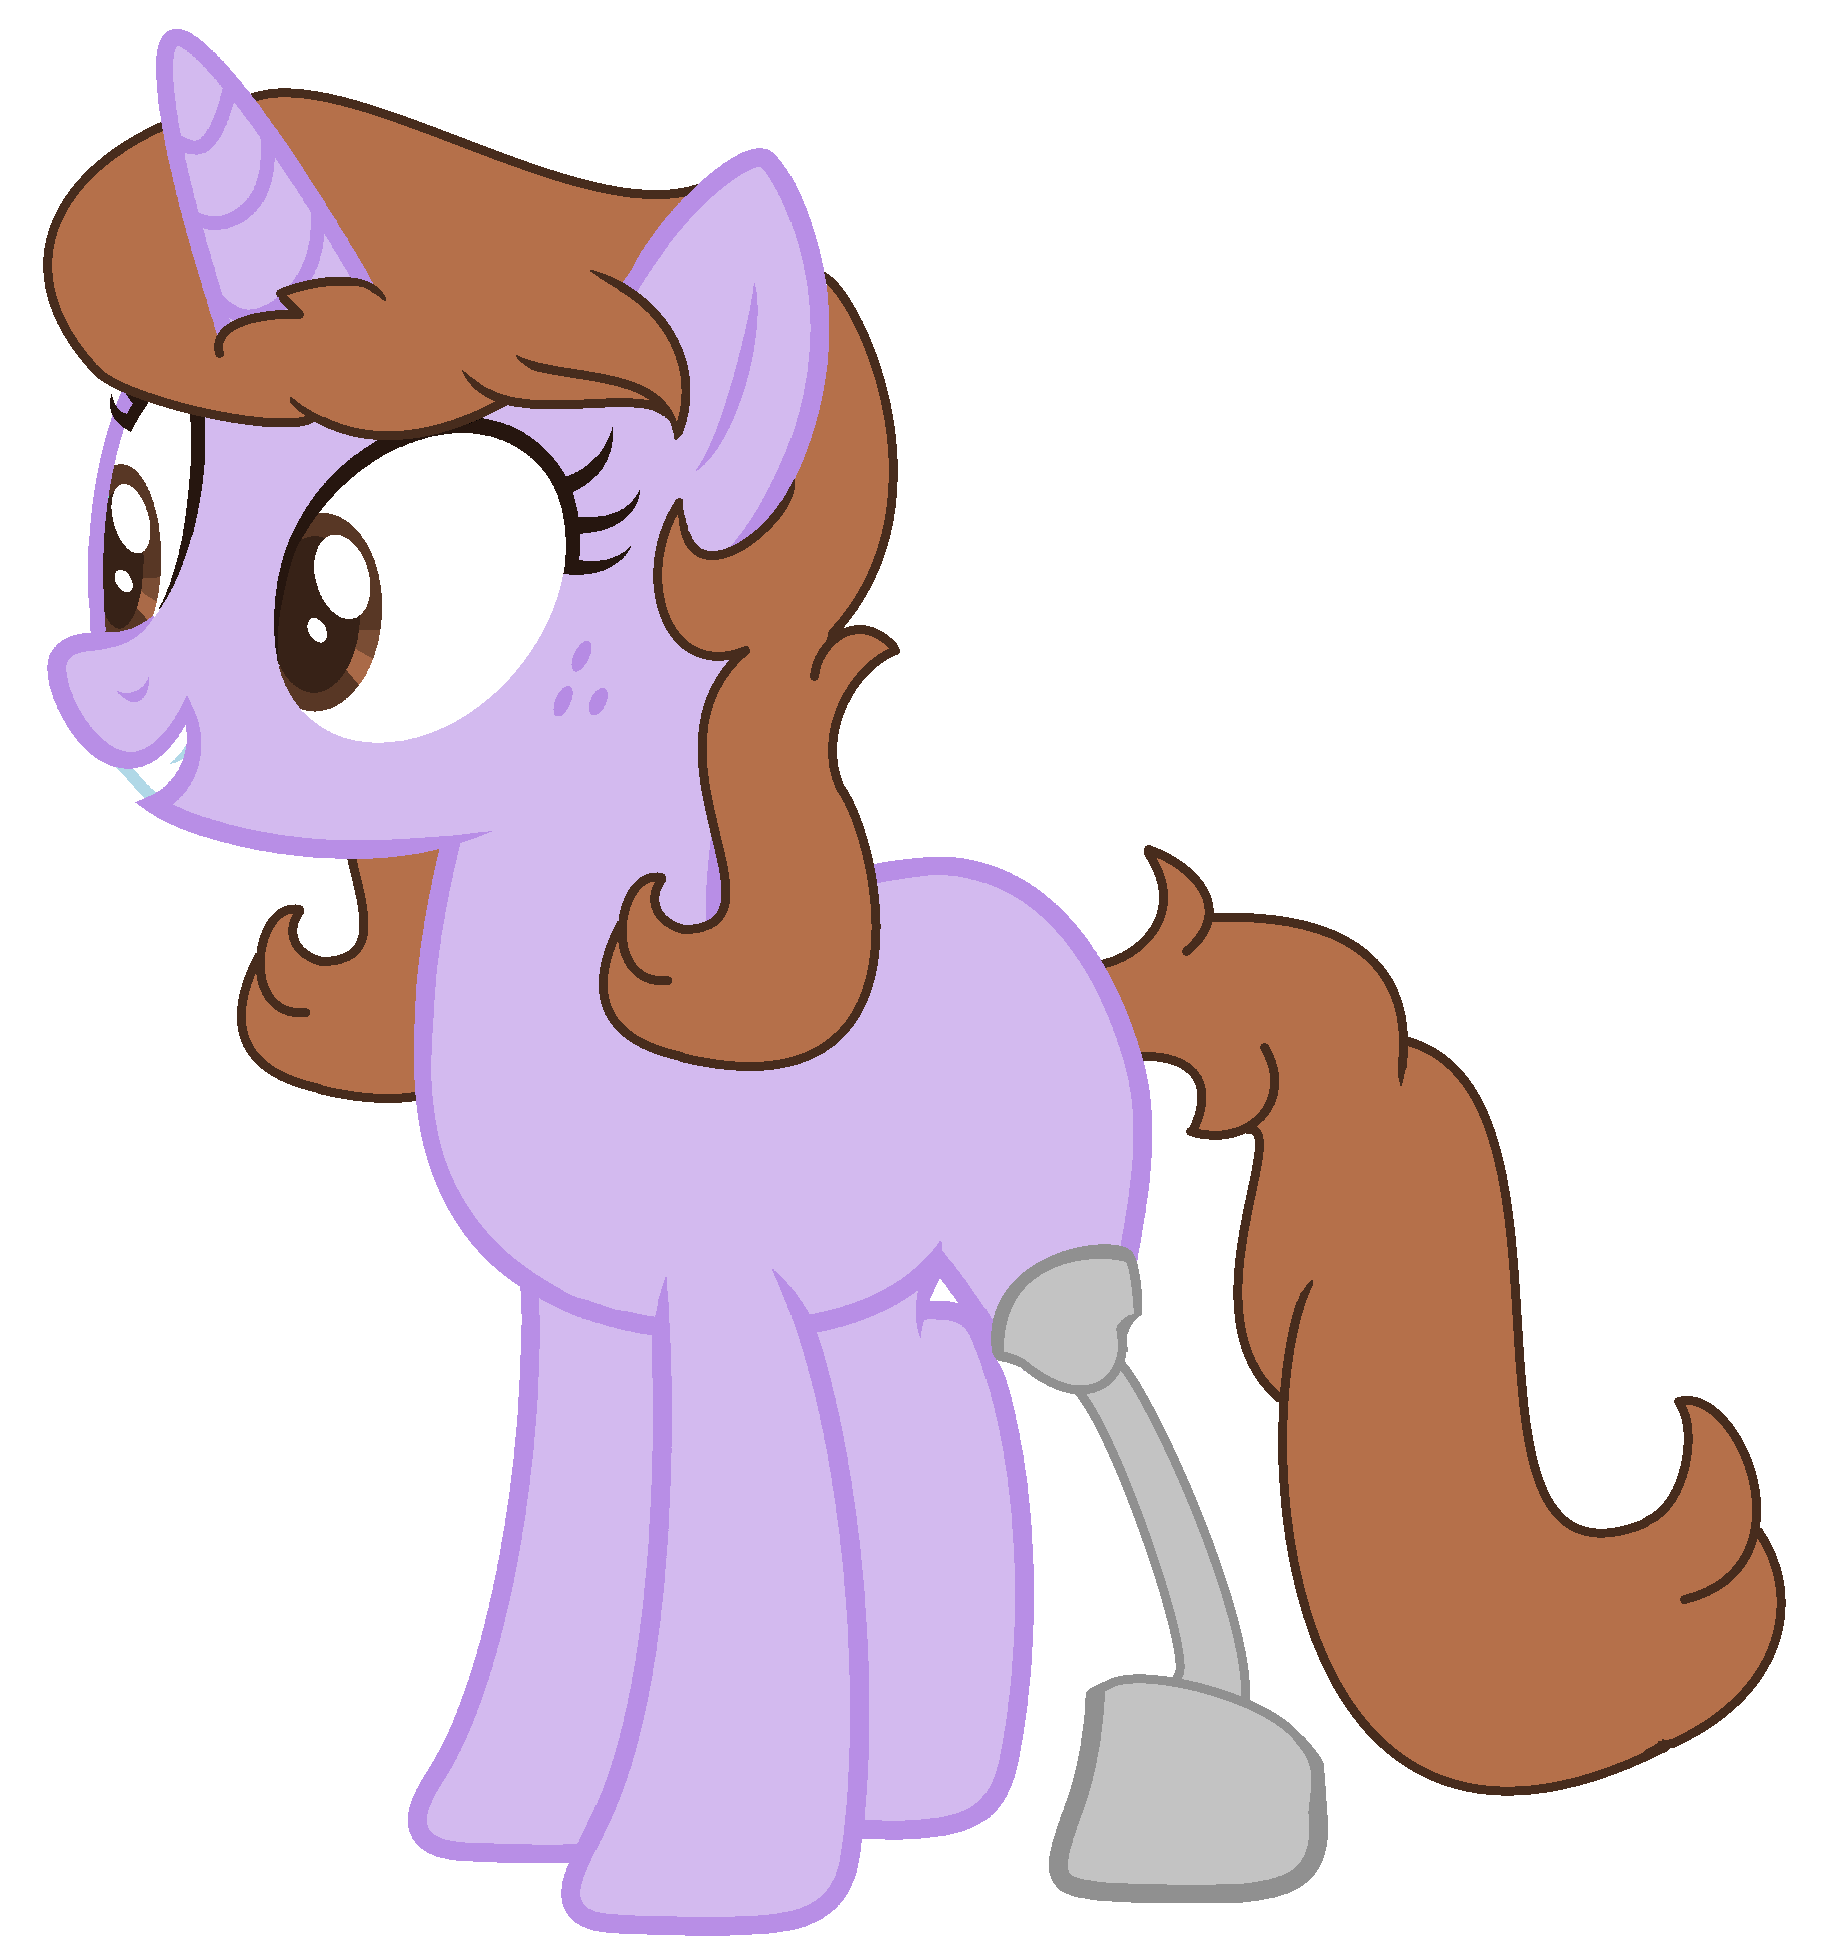 I need help naming my ponysona!